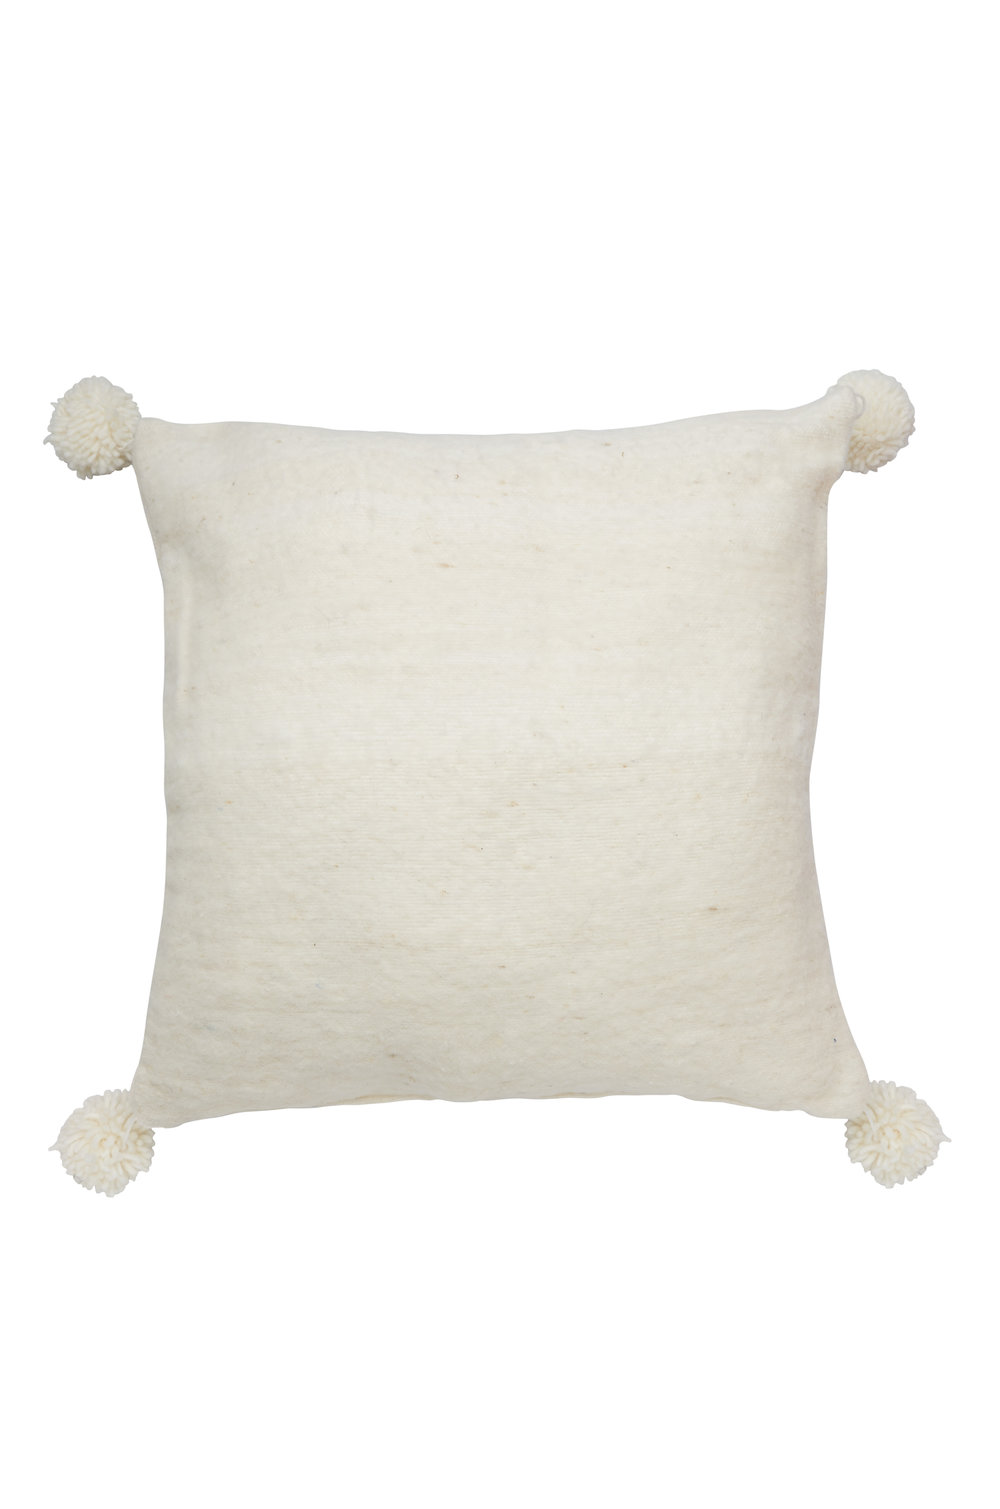 imprint house - pom pom cushion.jpg